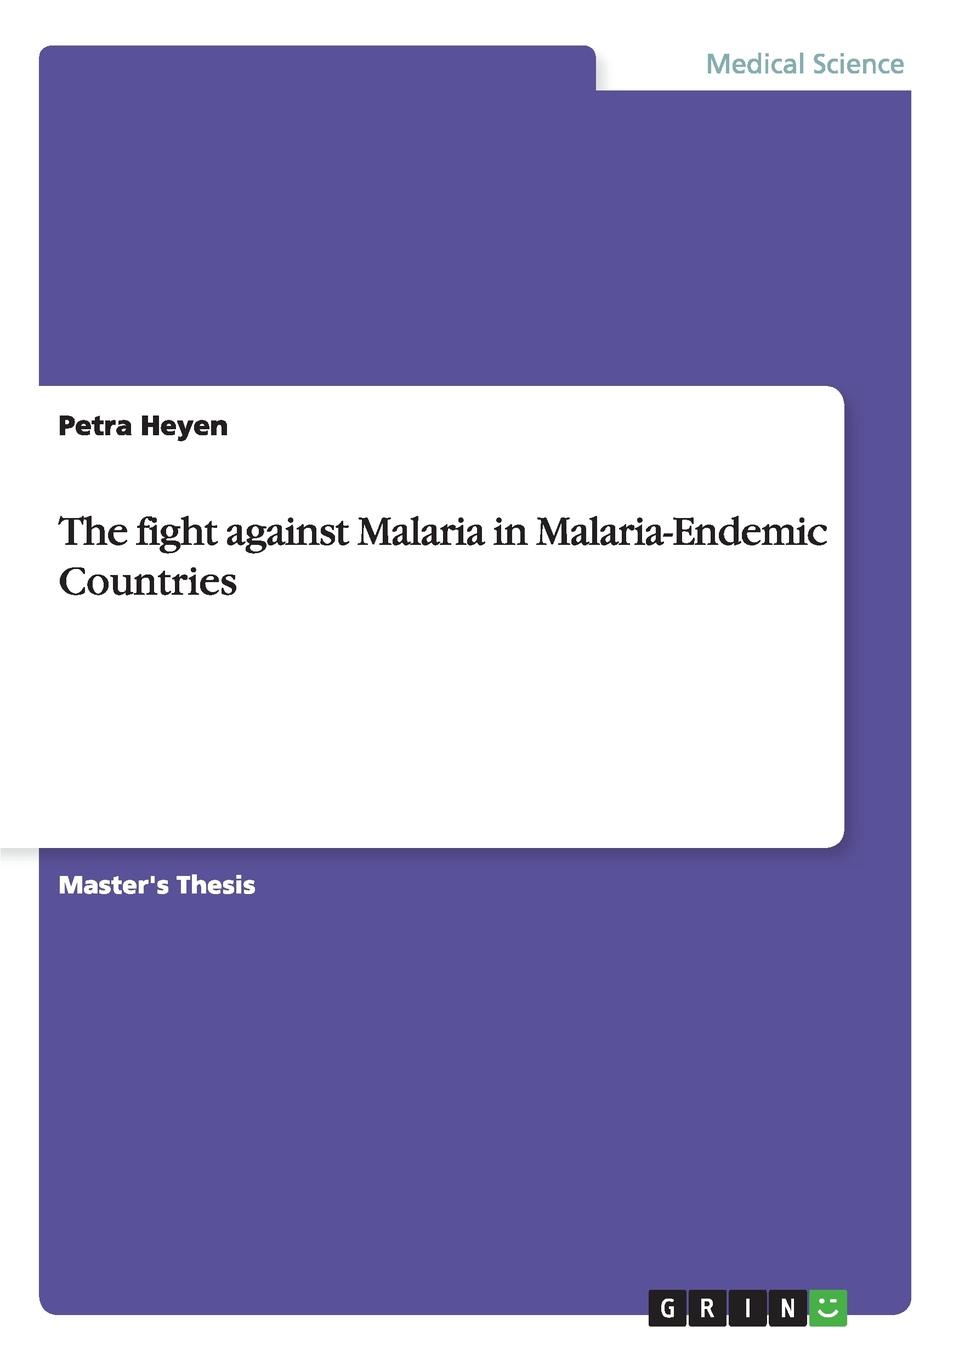 Petra Heyen The fight against Malaria in Malaria-Endemic Countries patrick okoth reticulocytosis as a surrogate marker of recent pf malaria infection